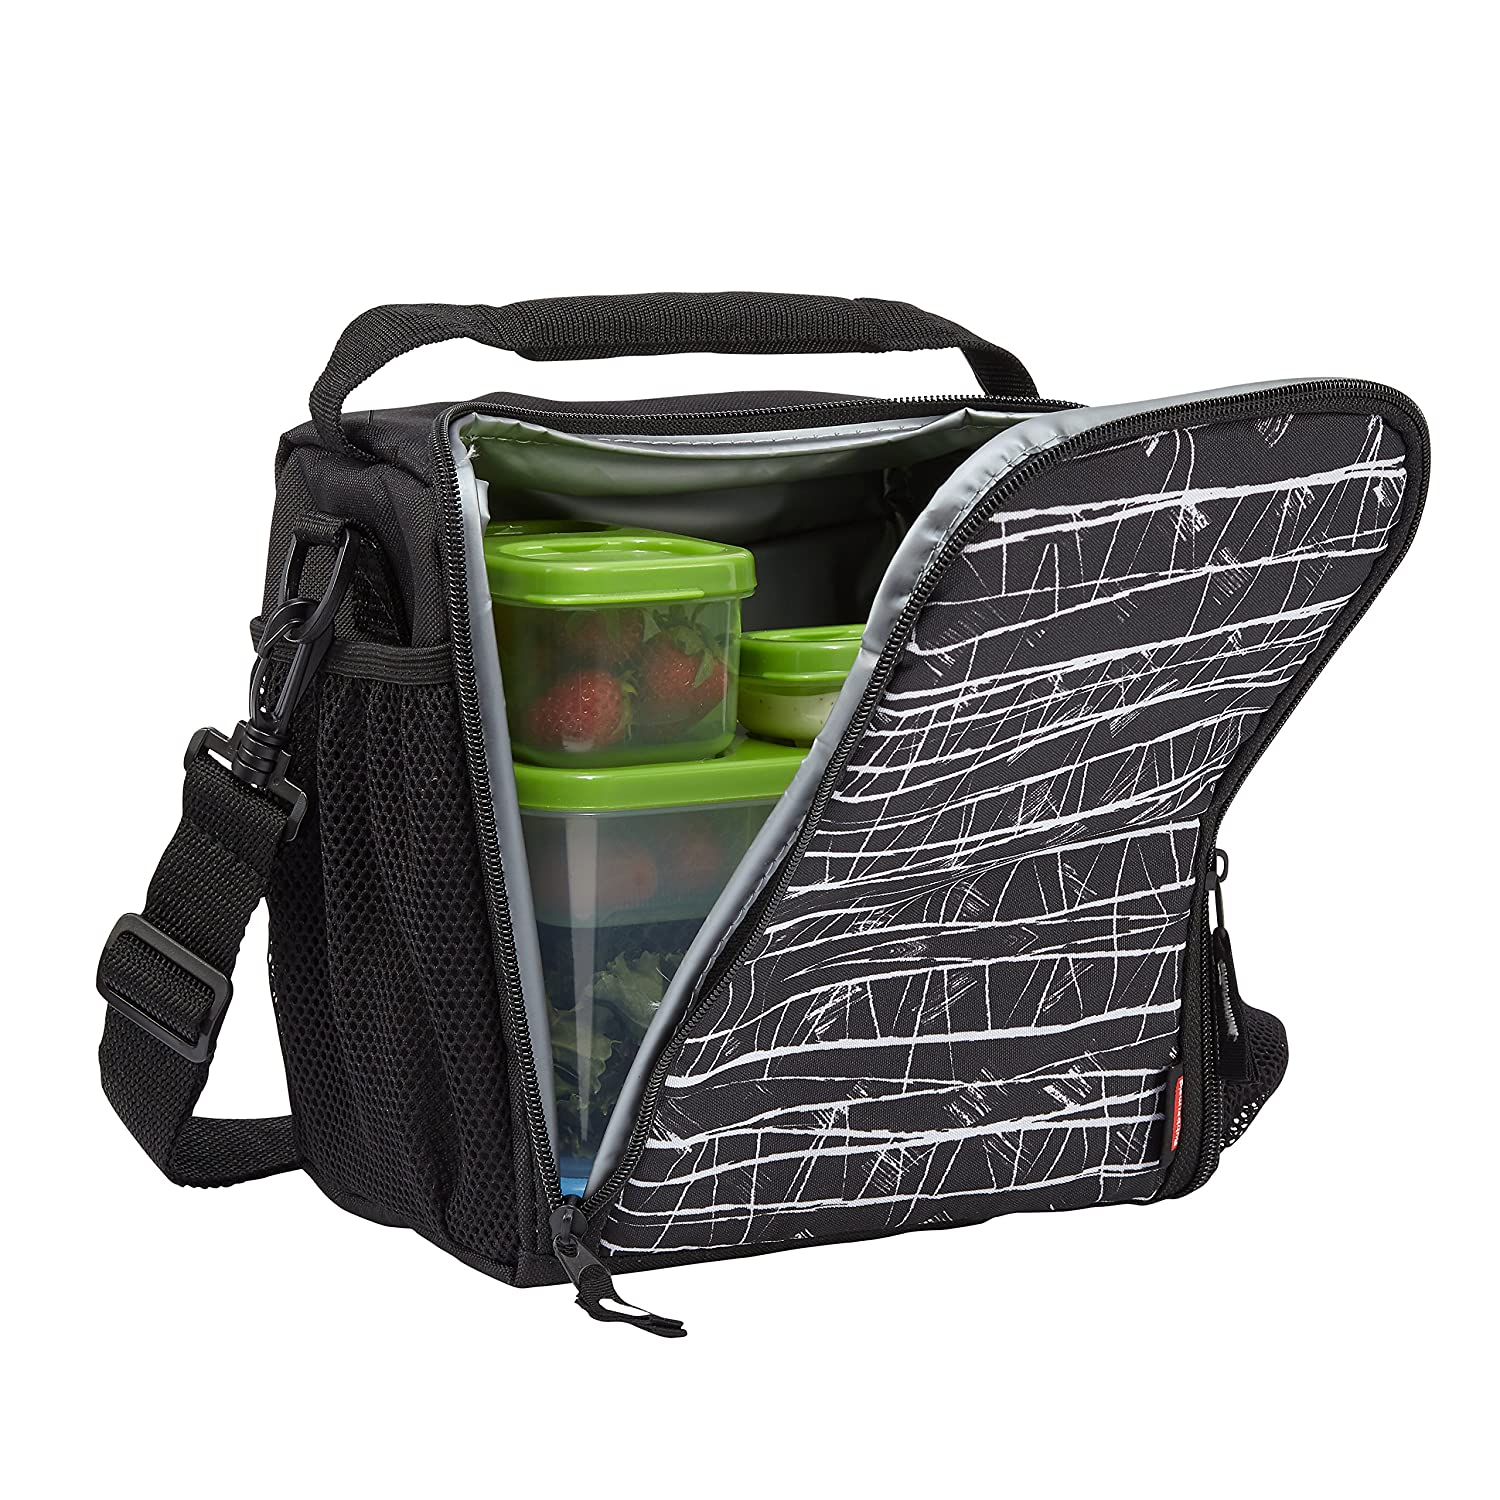 Rubbermaid Lunch Bag Black